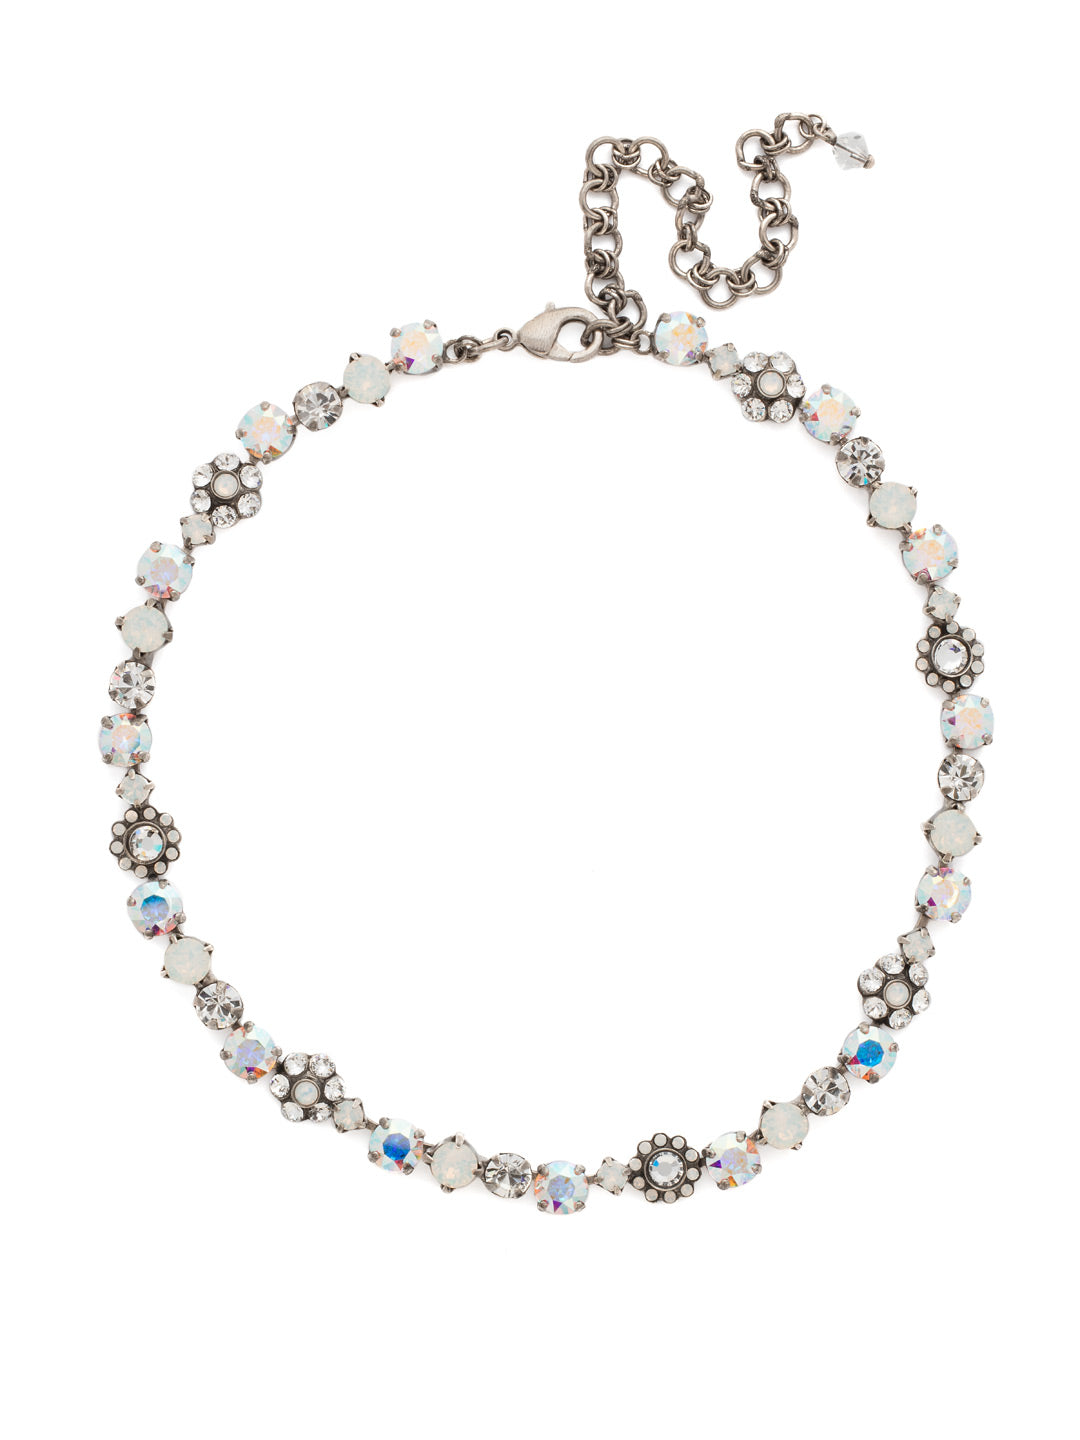 Classic Floral Tennis Necklace - NBE2ASWBR